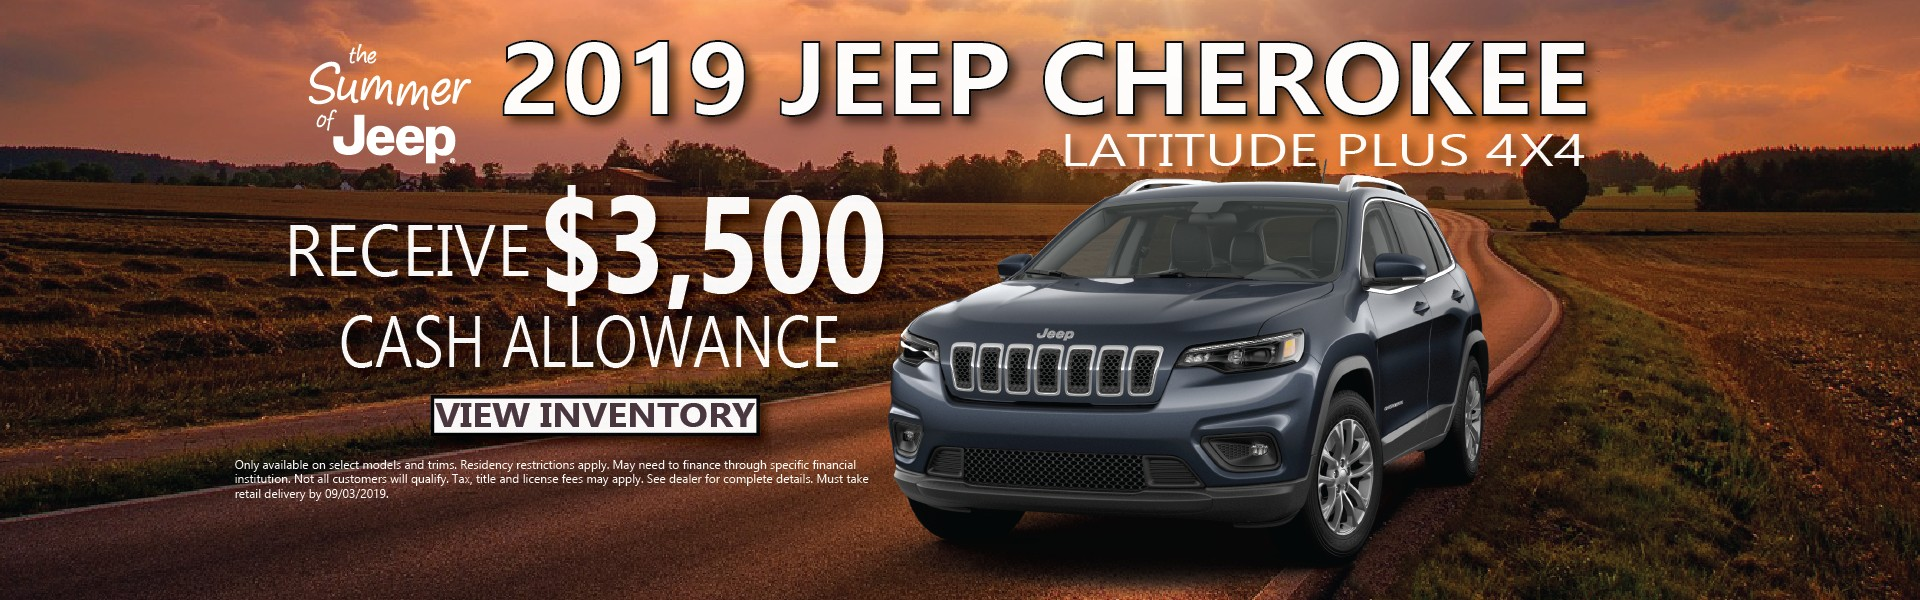 2019 Cherokee Finance Offer